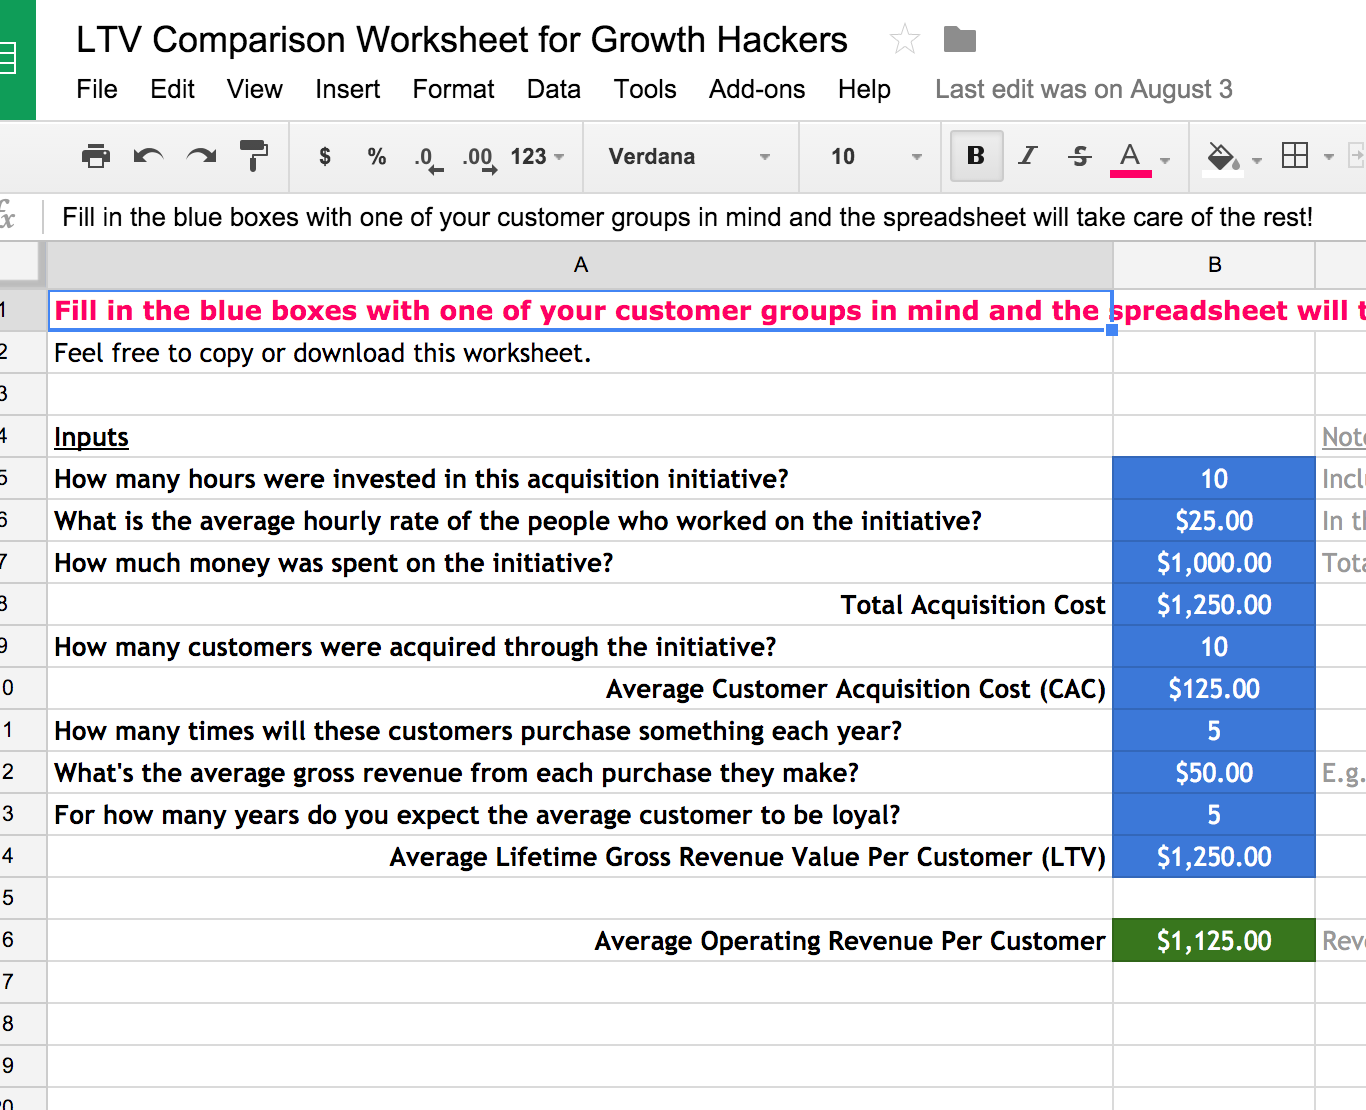 Worksheets How To Manage Your Money Worksheets workbooks how to manage your money worksheets free printable marketing budget eazls growth hacking toolkit